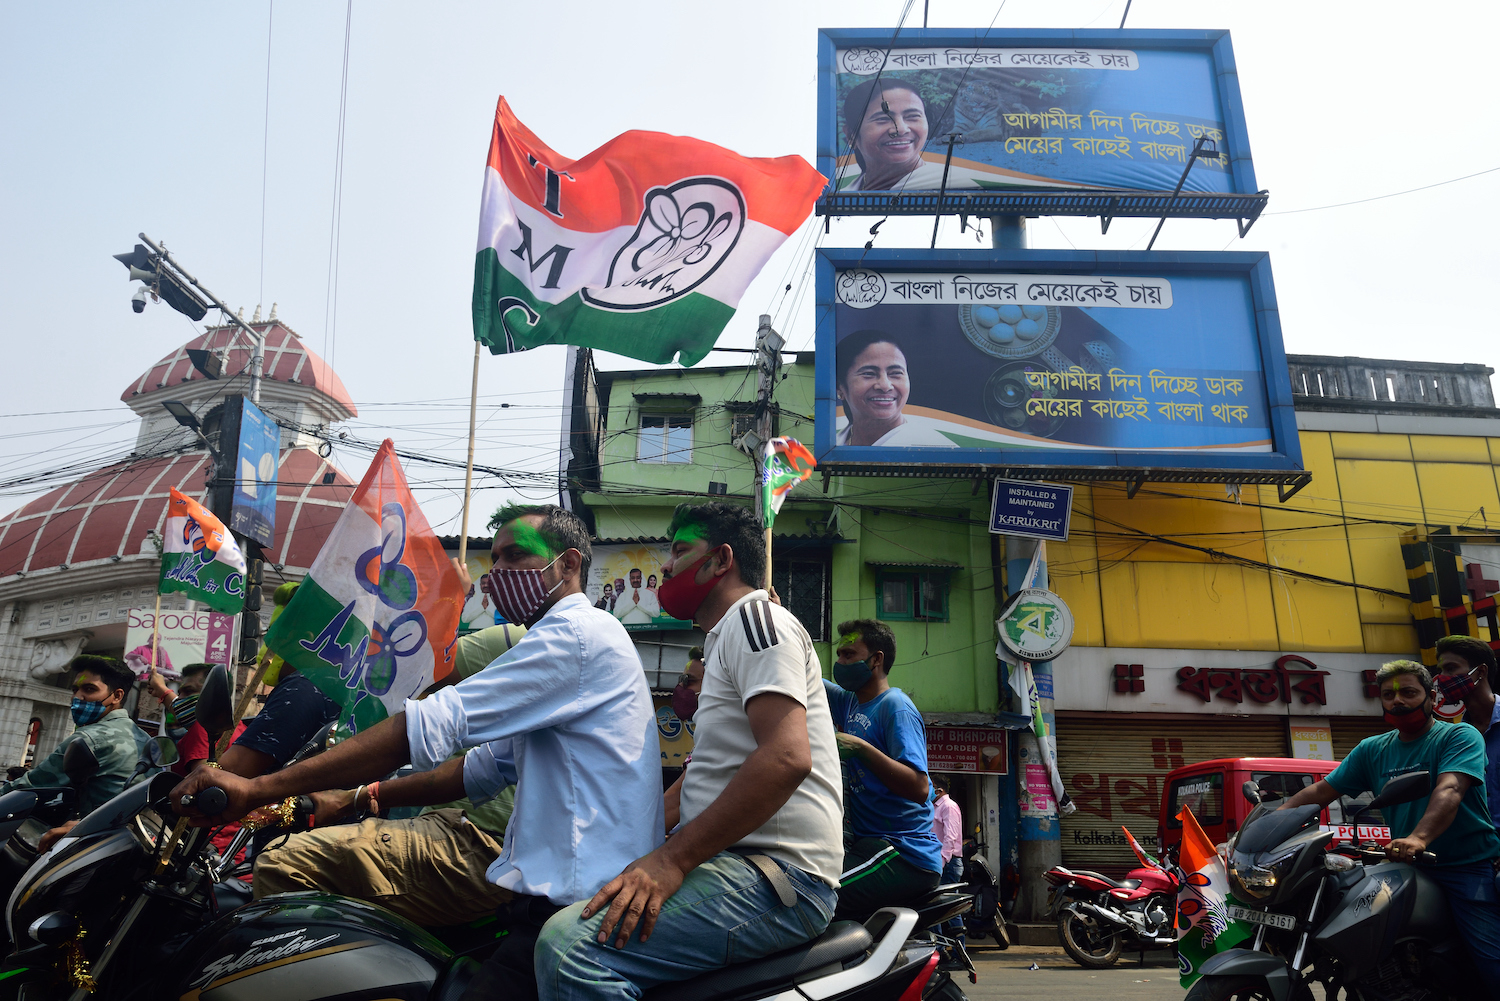 Trinamul Congress supporters celebrate the party's victory in the West Bengal elections in Kolkata, India, on May 2.